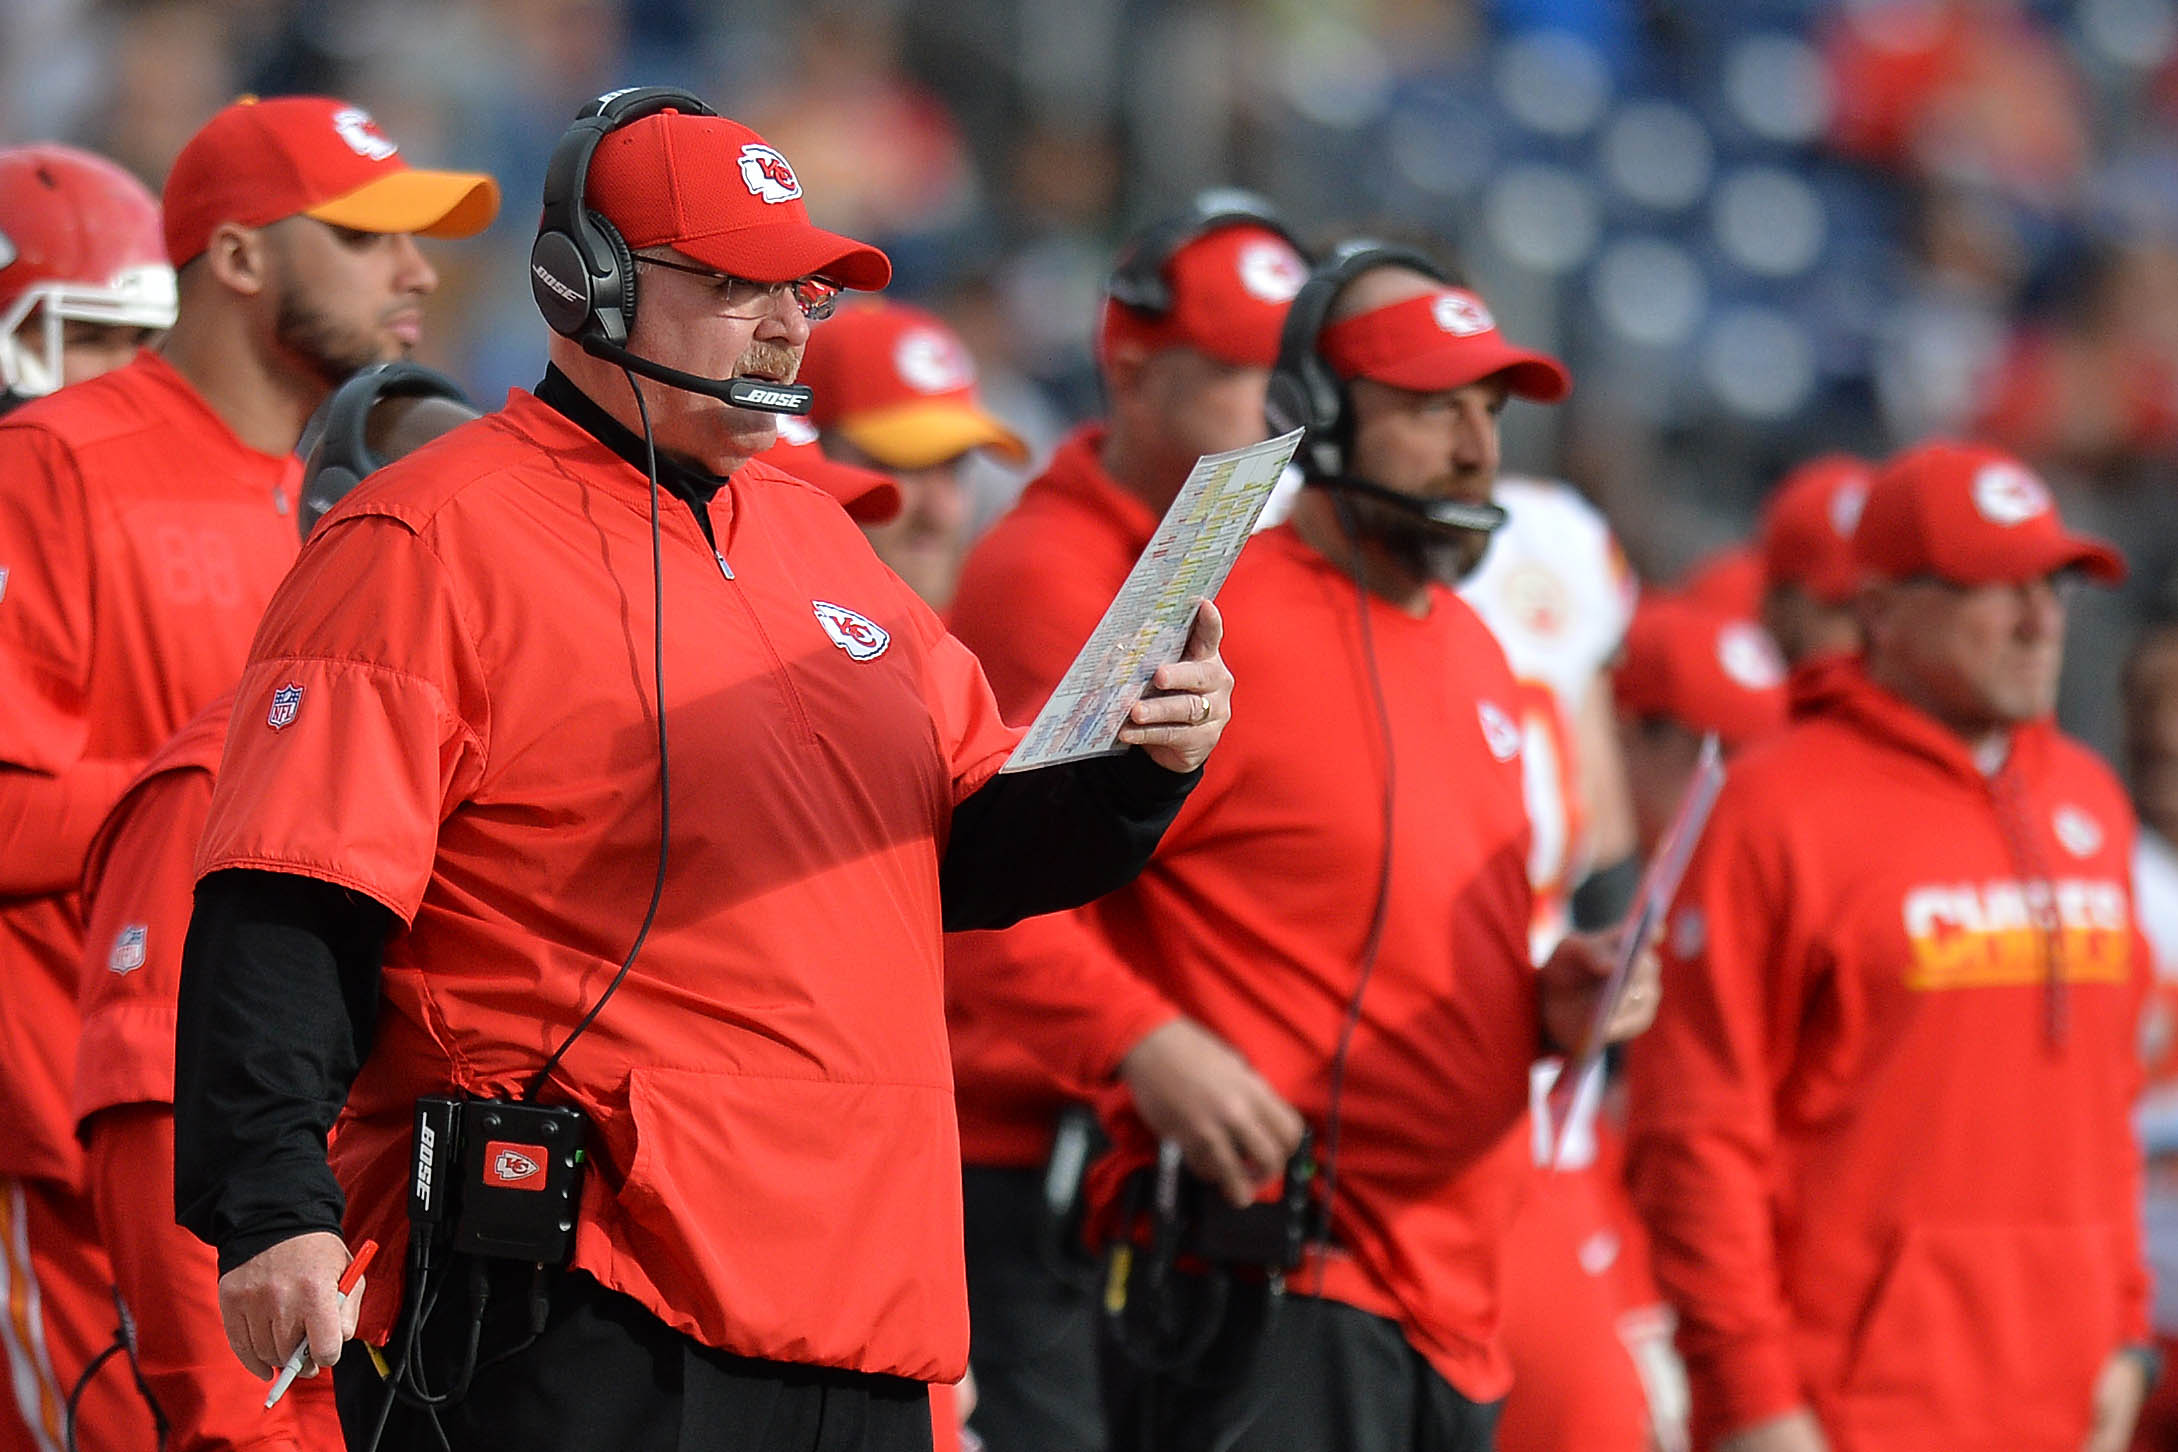 9782619-nfl-kansas-city-chiefs-at-san-diego-chargers